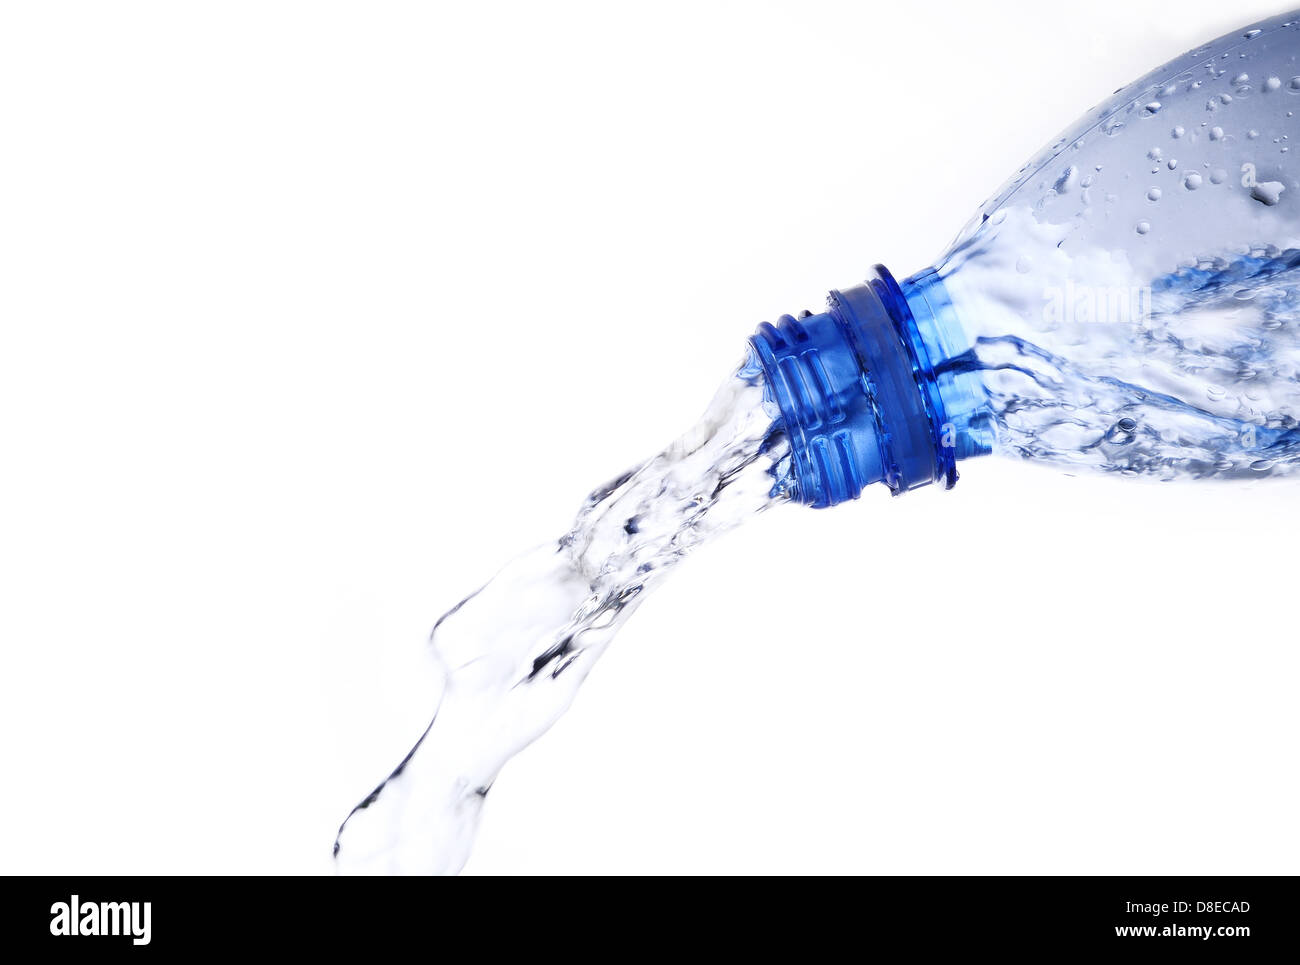 pouring water from water bottle - Stock Image